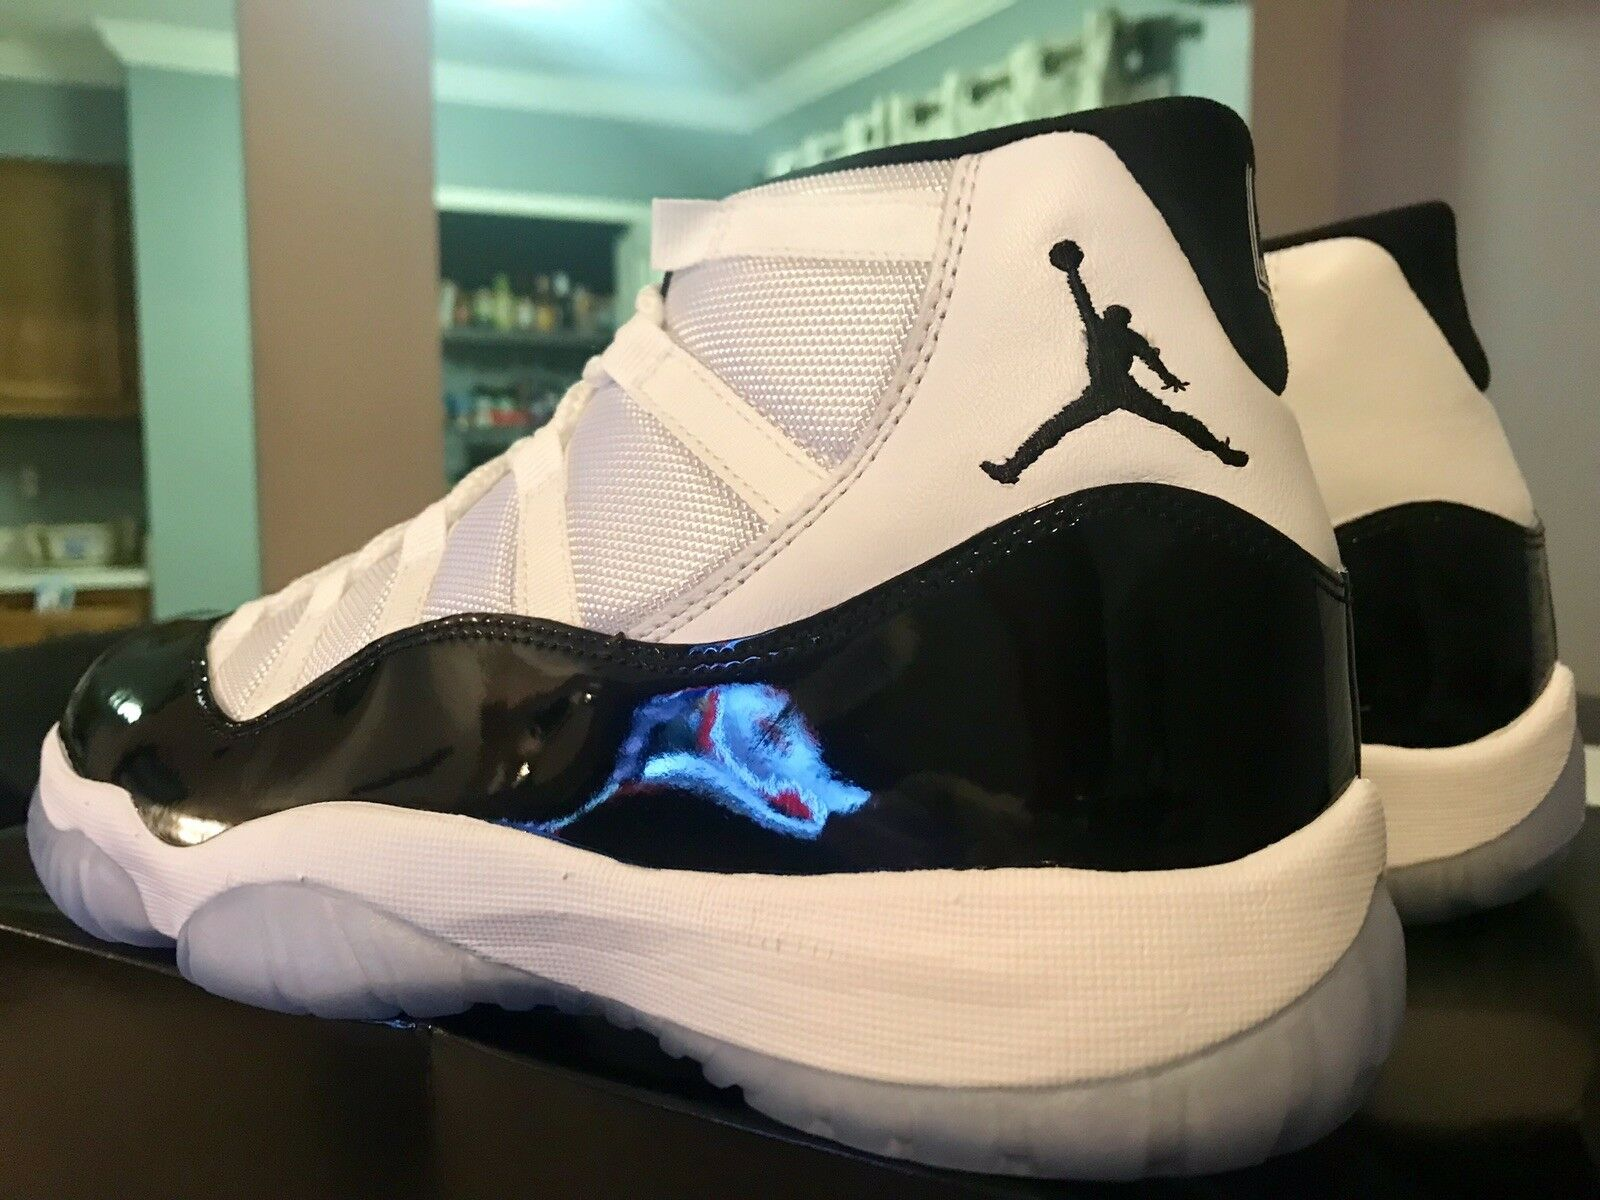 Air Jordan Retro 11 XI Concord Size 10.5 SNKRS Shock Drop and in hand